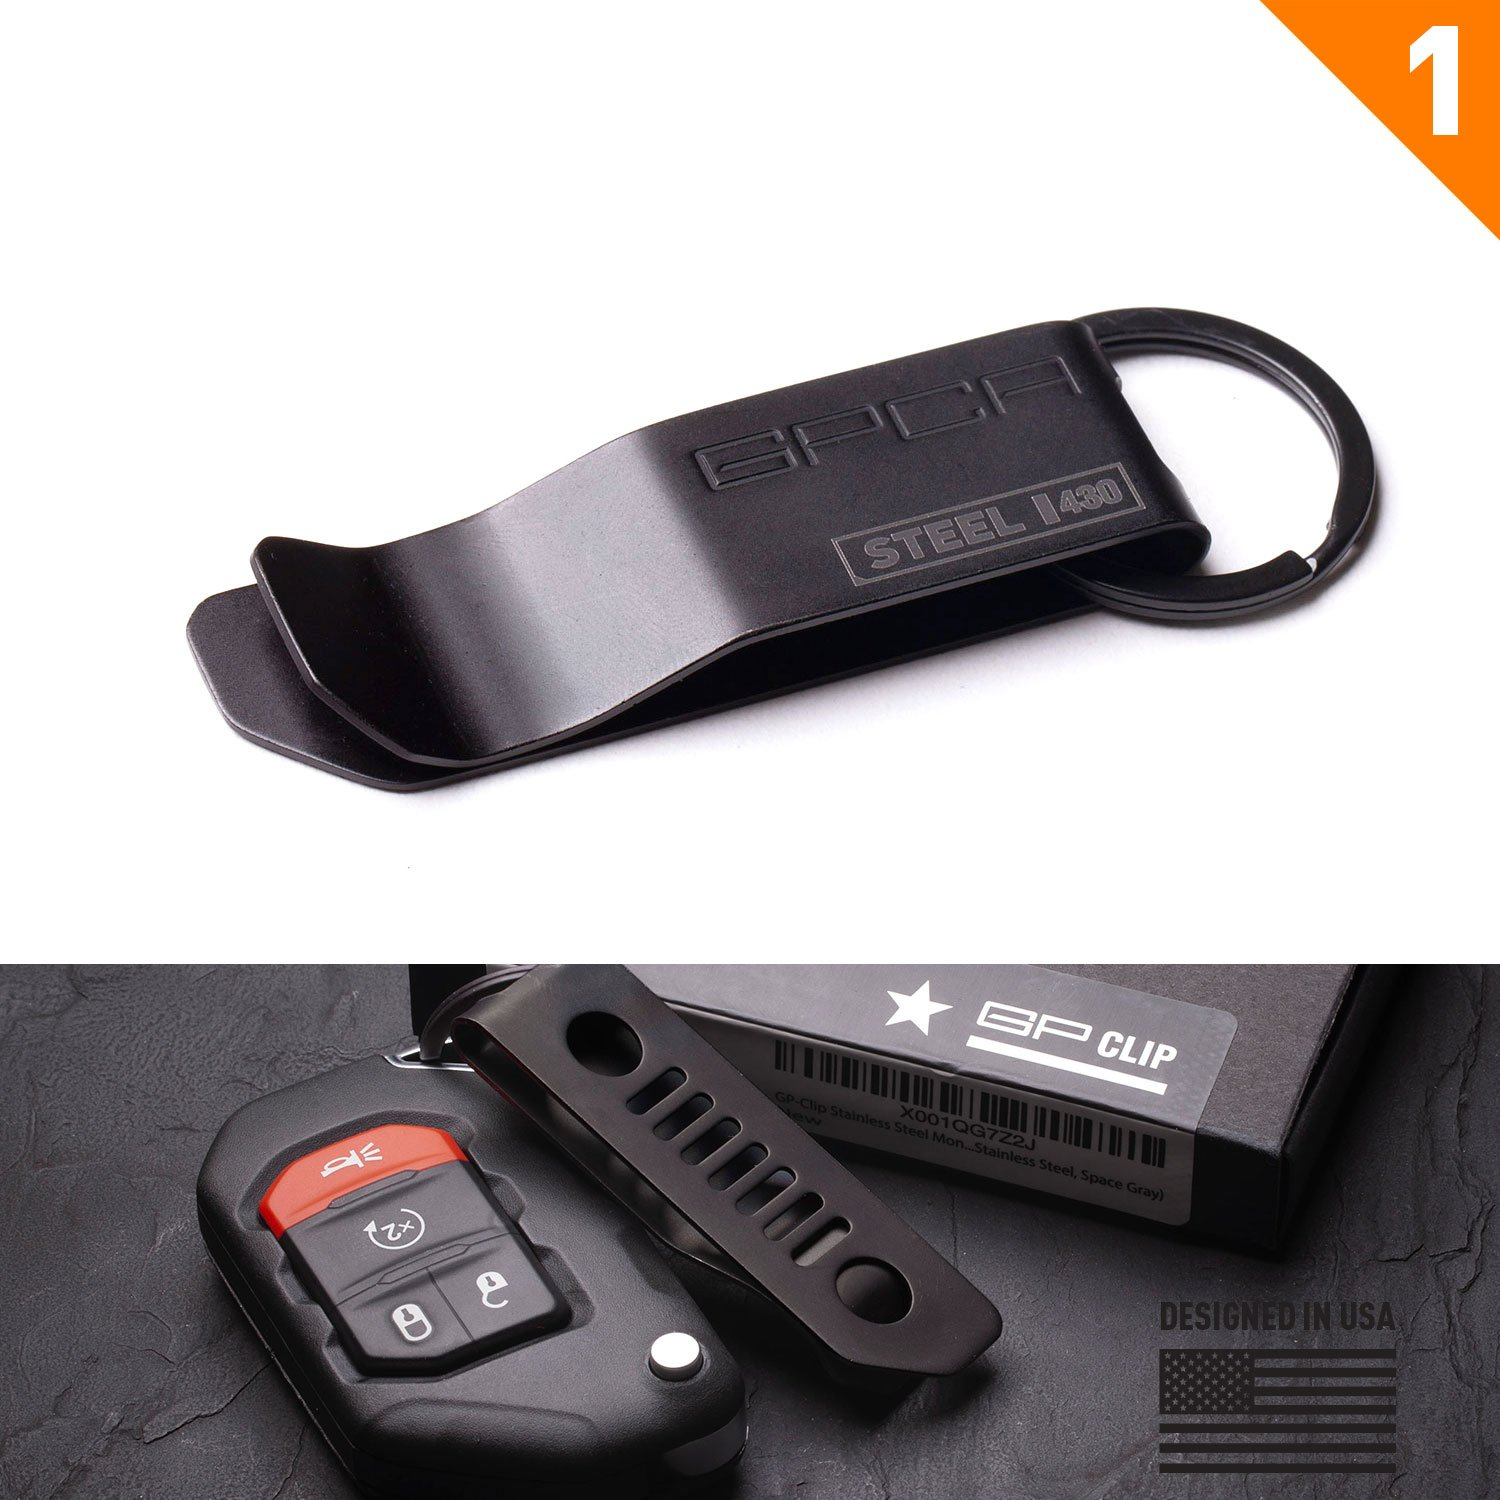 GP-Clip Stainless Steel Money Clip/Key Chain with Belt Clip (Stainless Steel, Jet Black)